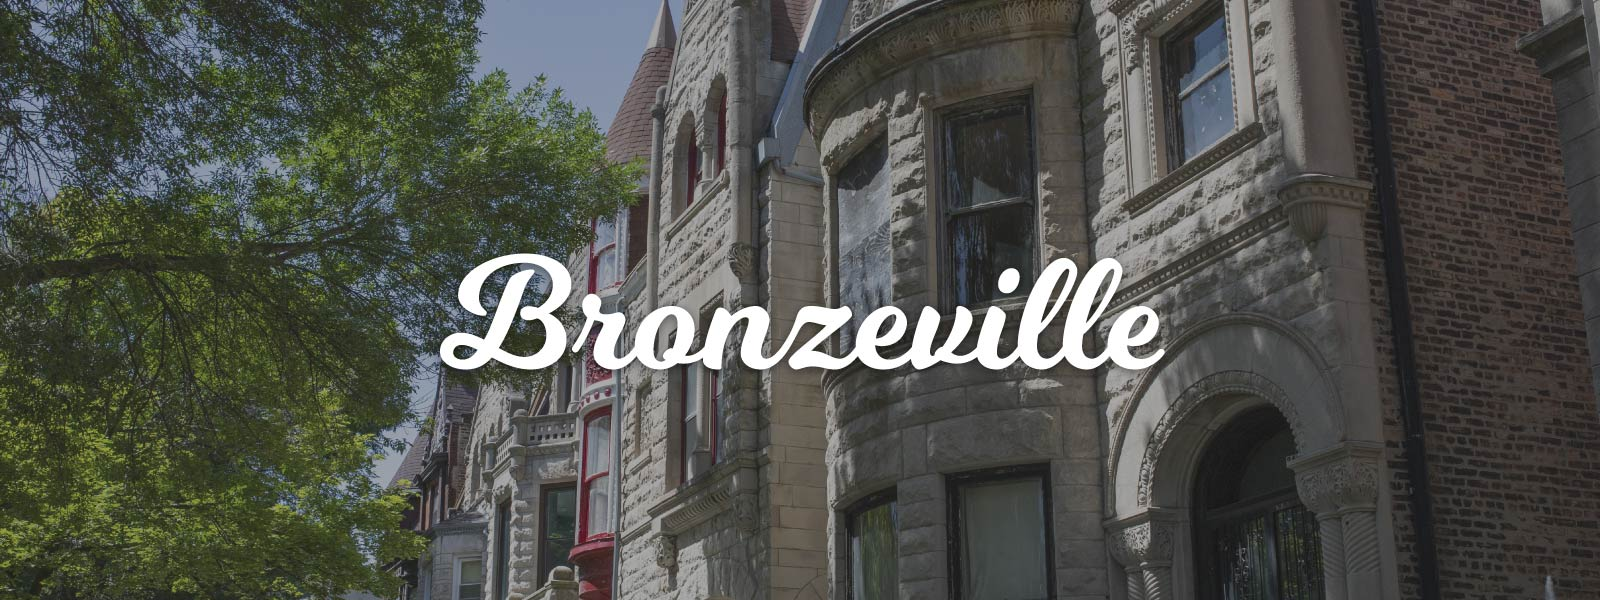 What It's Like Living in Bronzeville, Chicago